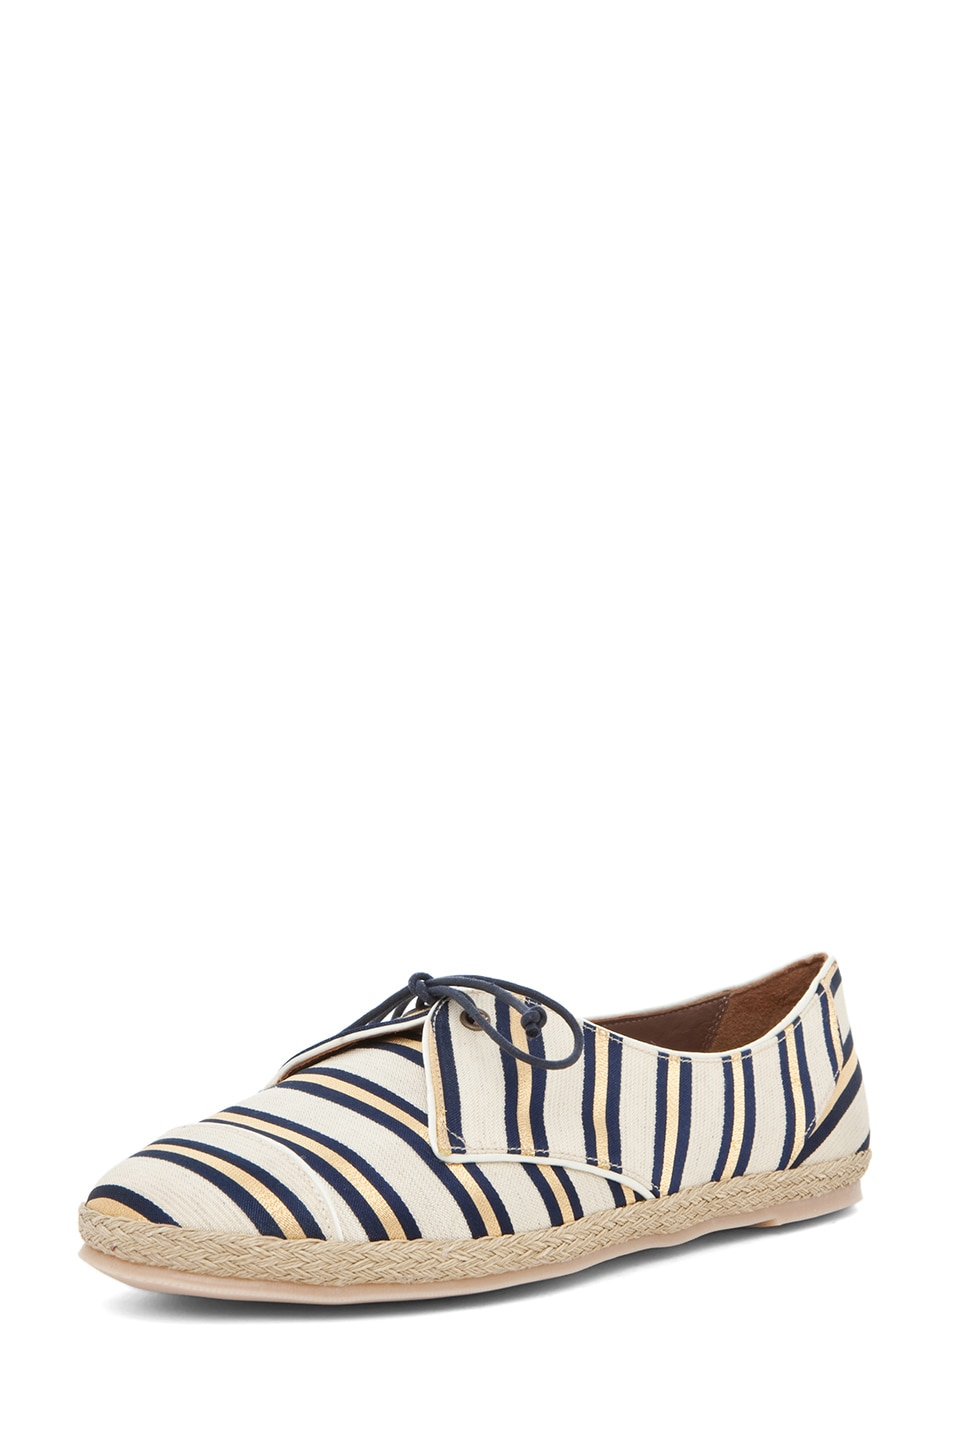 Image 2 of Tabitha Simmons Dolly Shiny-Canvas Cricket Stripe Flats in Gold & Navy